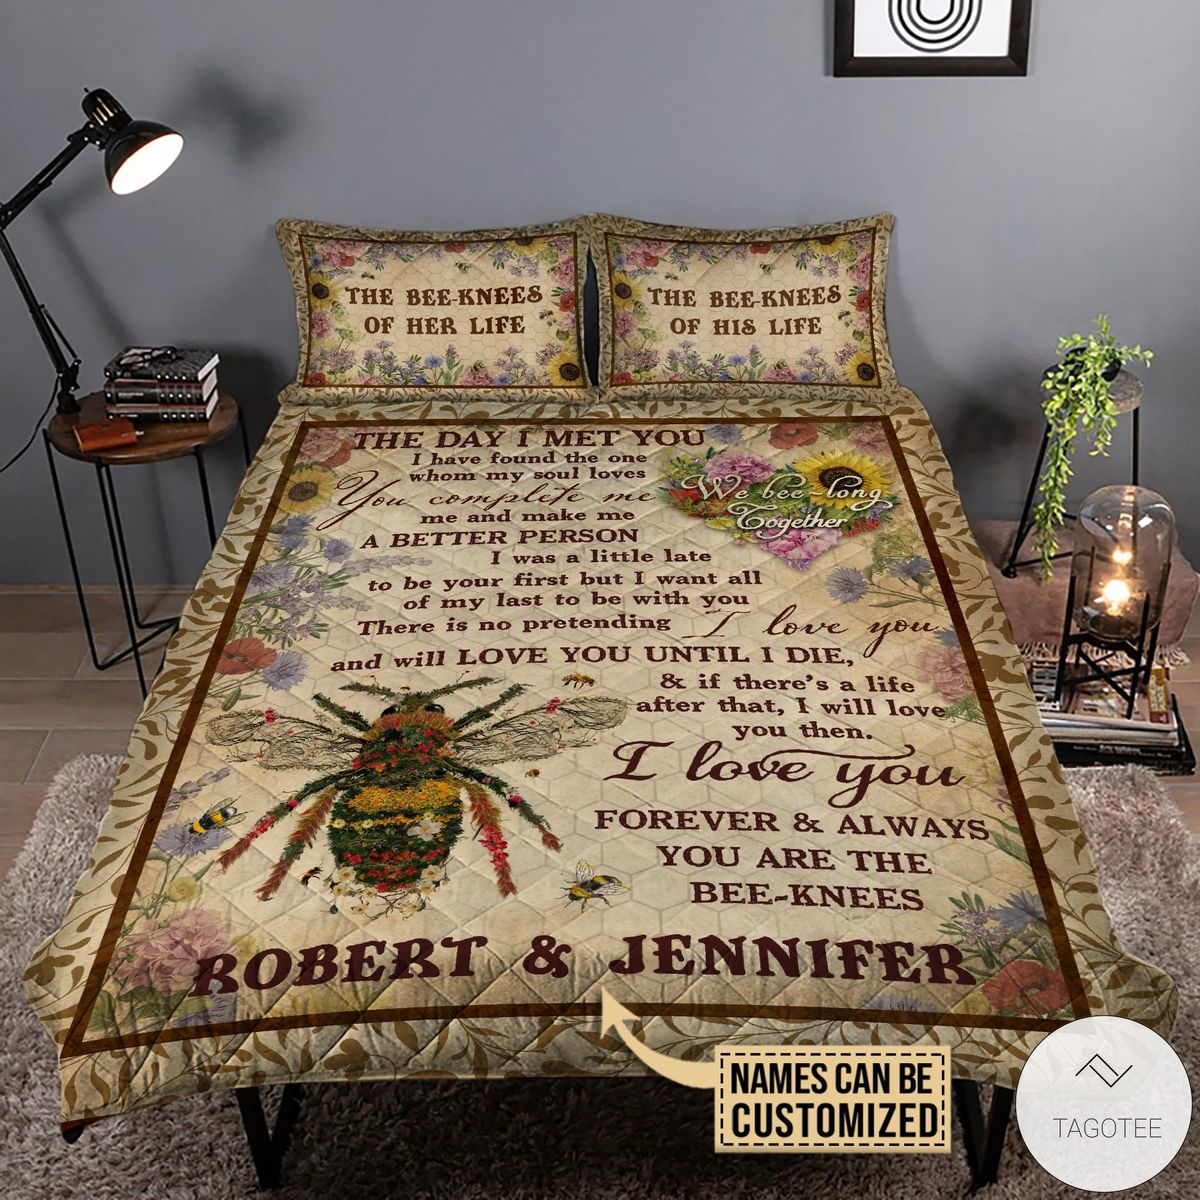 Personalized Honey Bee Knee Couple The Day I Met you Quilt Bedding Set